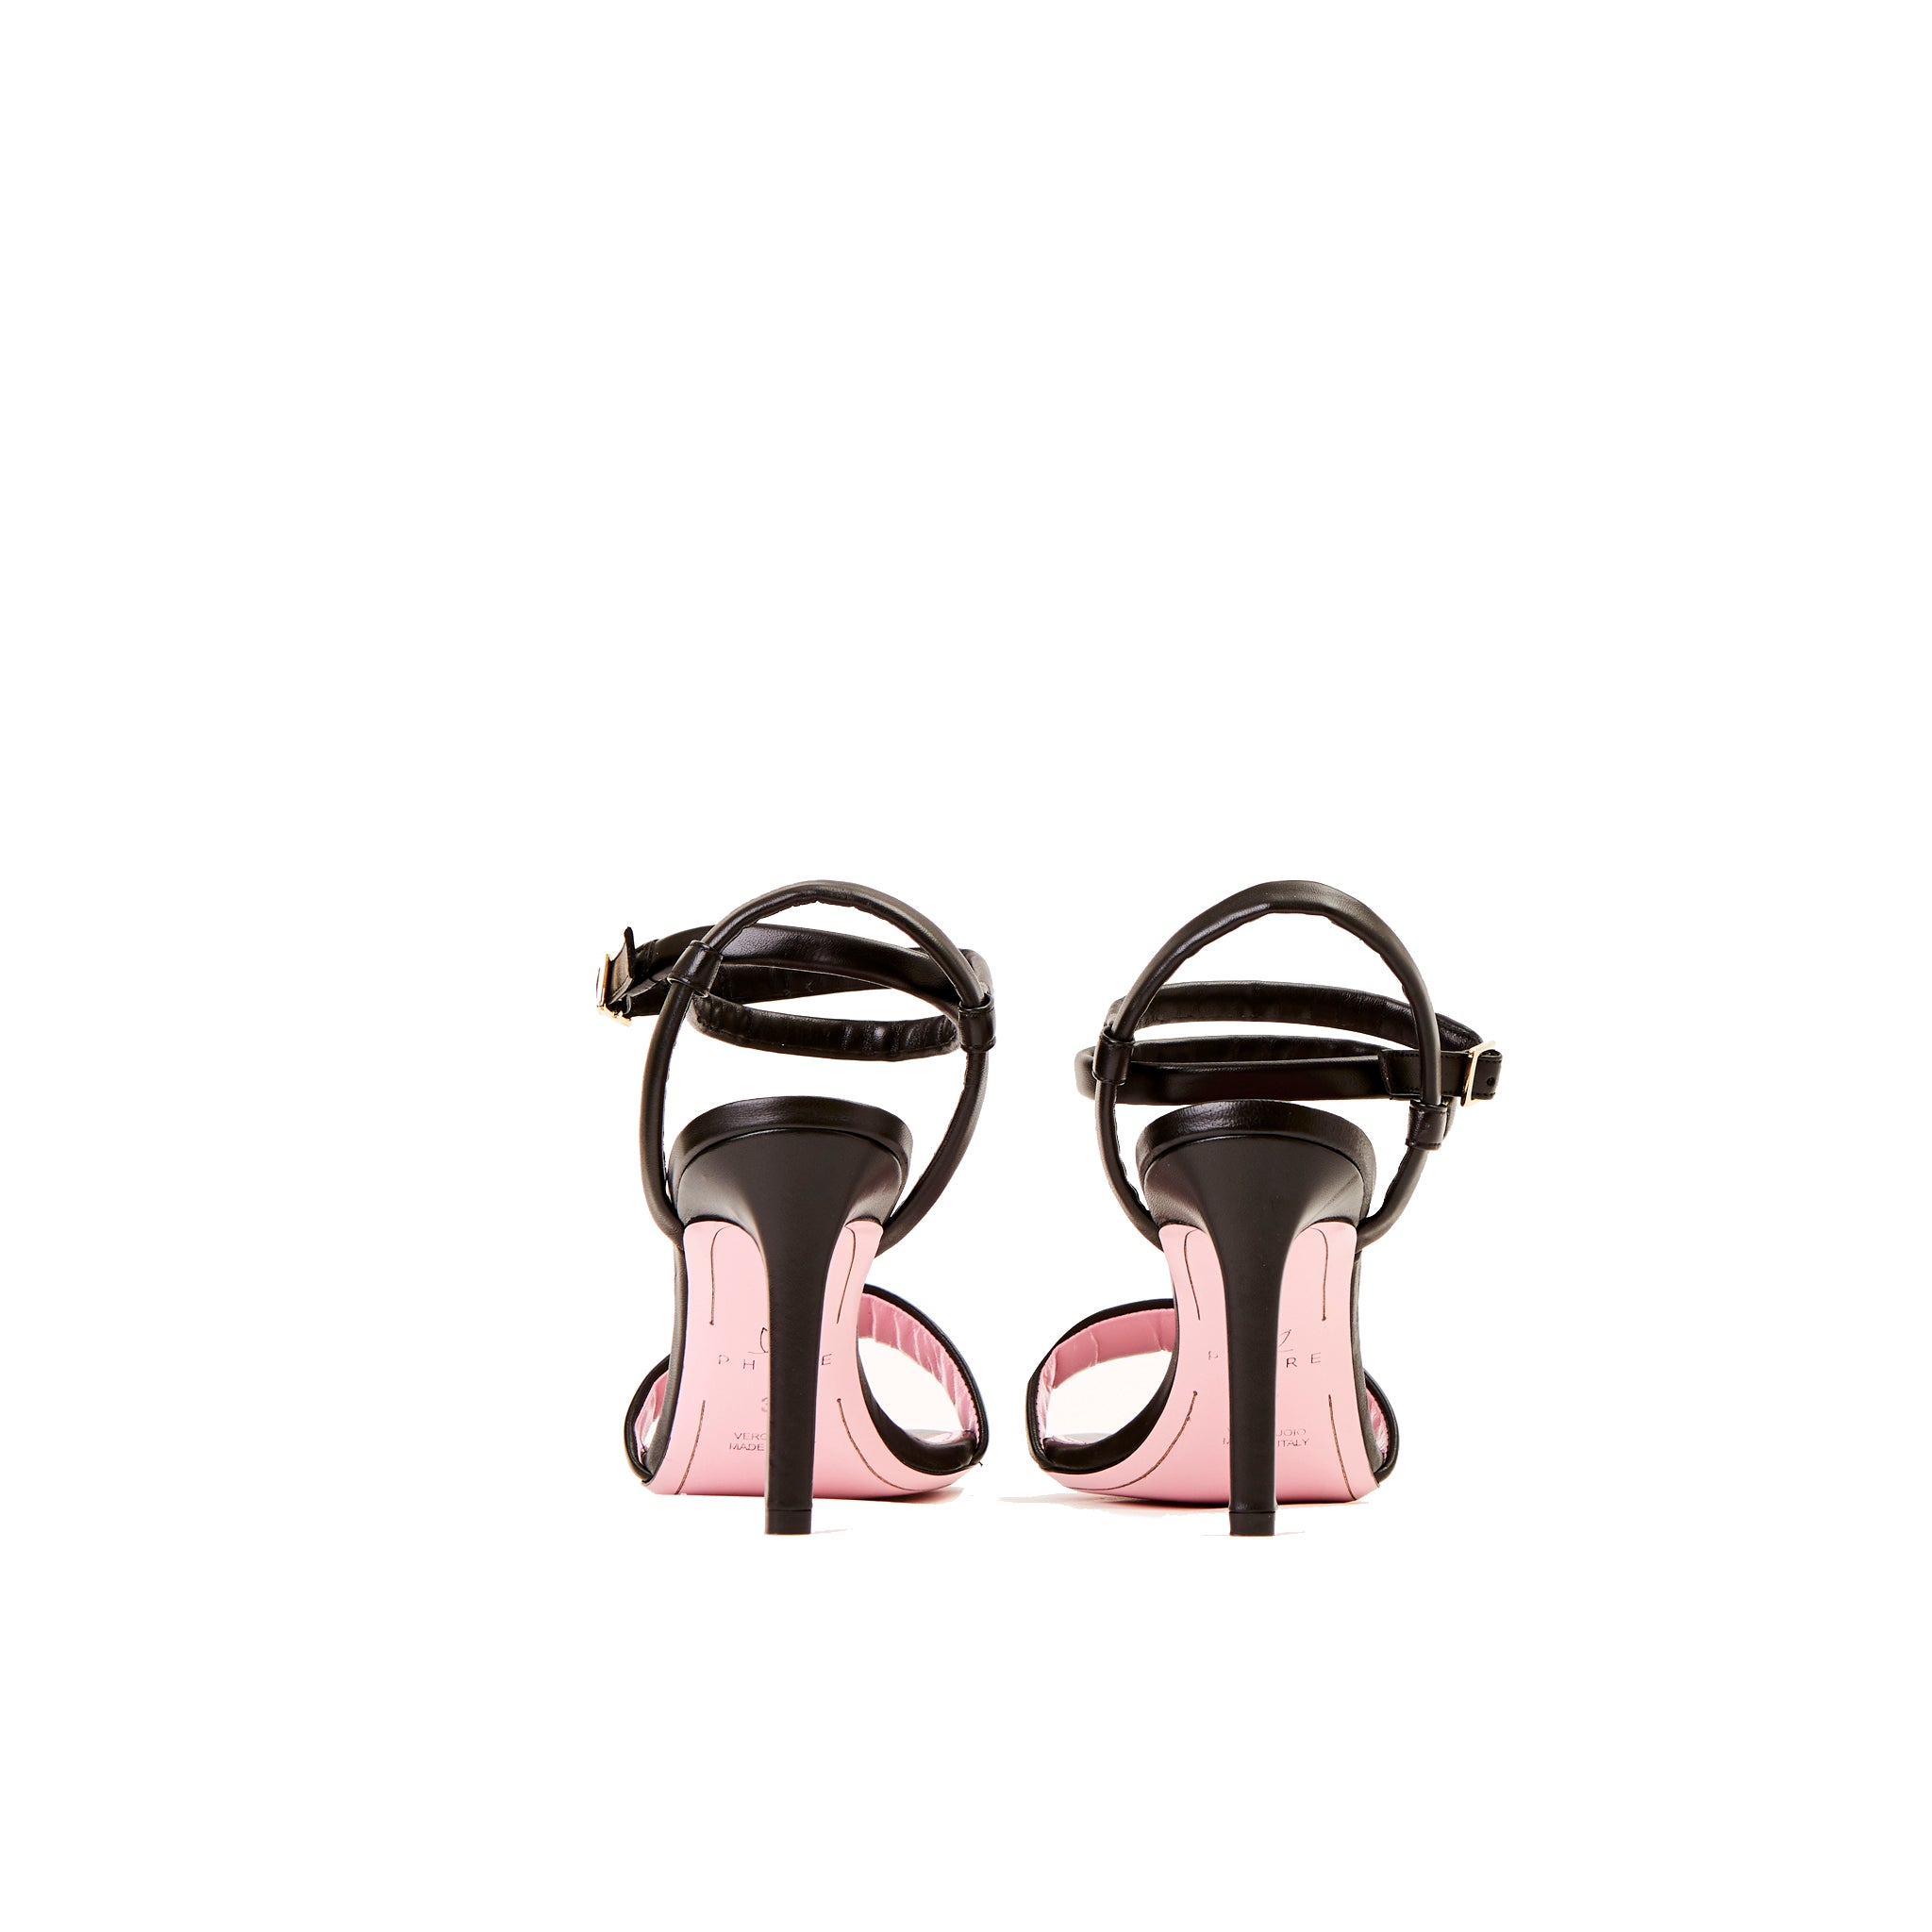 Phare Wrap ankle strap high heel sandal in black leather back view